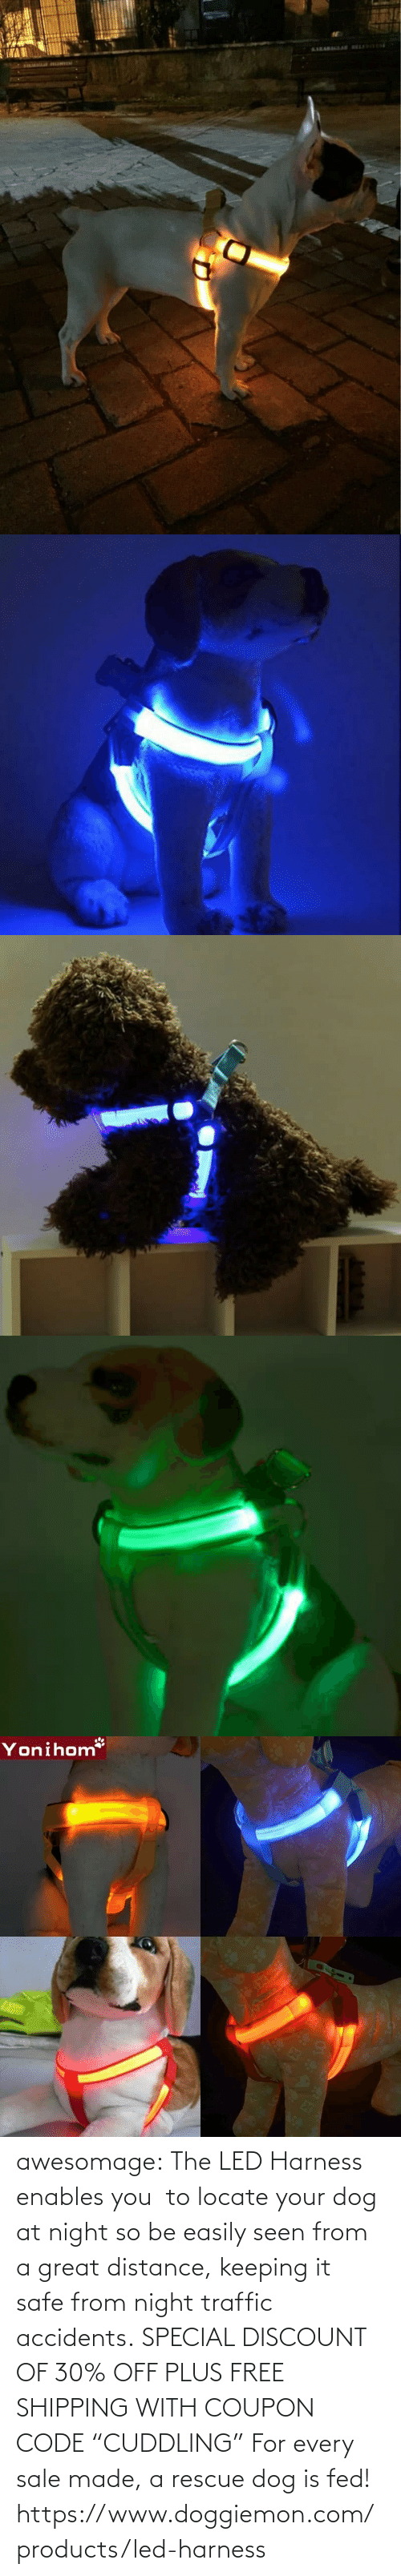 "code: awesomage:   The LED Harness enables you  to locate your dog at night so be easily seen from a great distance, keeping it safe from night traffic accidents. SPECIAL DISCOUNT OF 30% OFF PLUS FREE SHIPPING WITH COUPON CODE ""CUDDLING"" For every sale made, a rescue dog is fed!   https://www.doggiemon.com/products/led-harness"